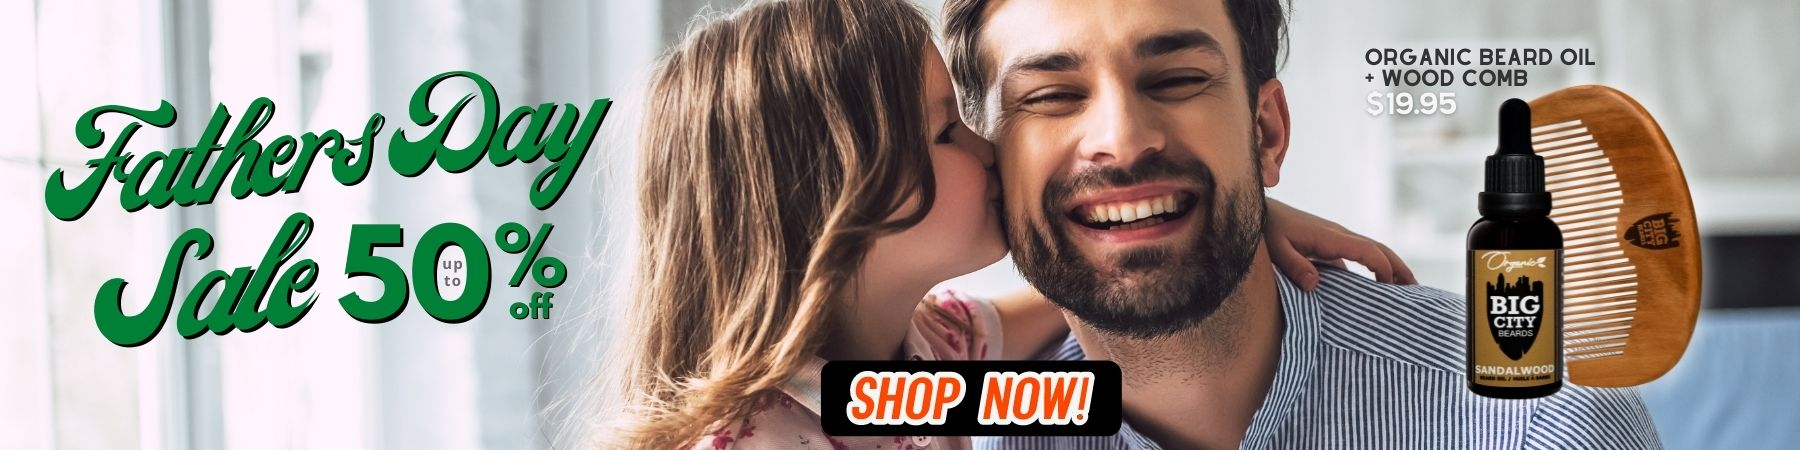 Fathers Day Sale on organic beard oils and balms from Big City Beards